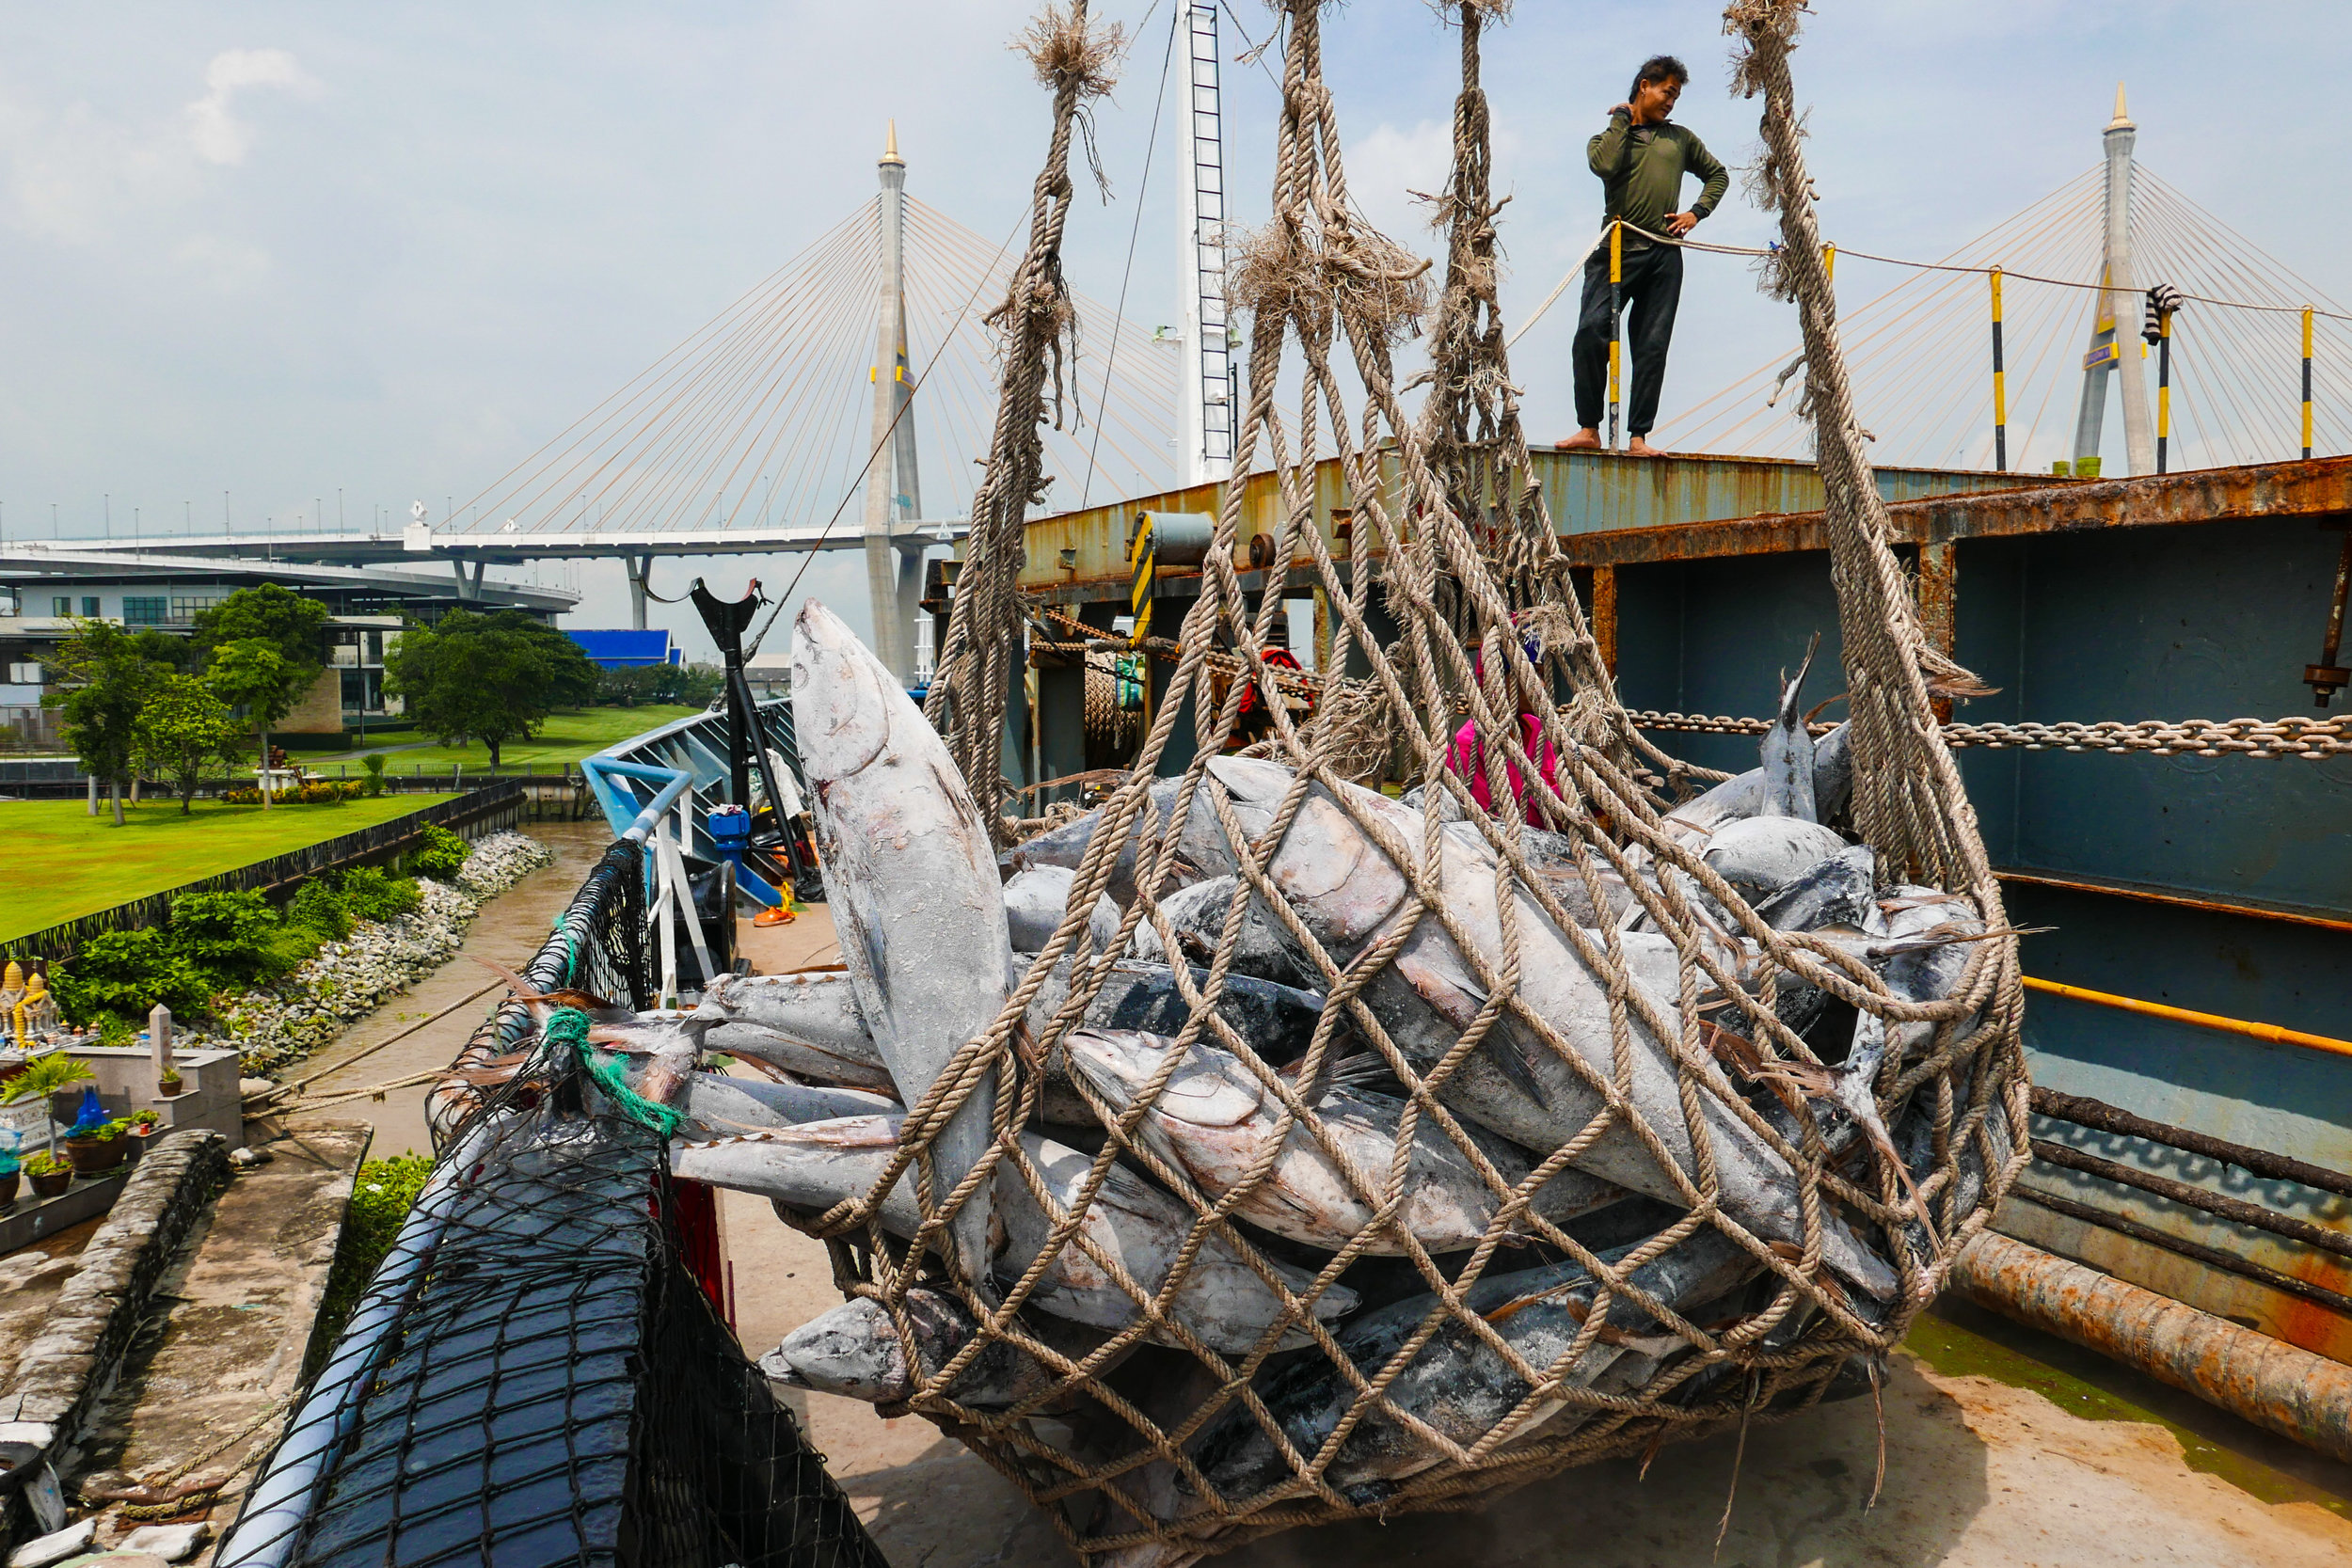 Tuna caught on a PNG flagged vessel, then transhipped in Majuro being unloaded in Bangkok (I been lucky to be in the 3 events!)